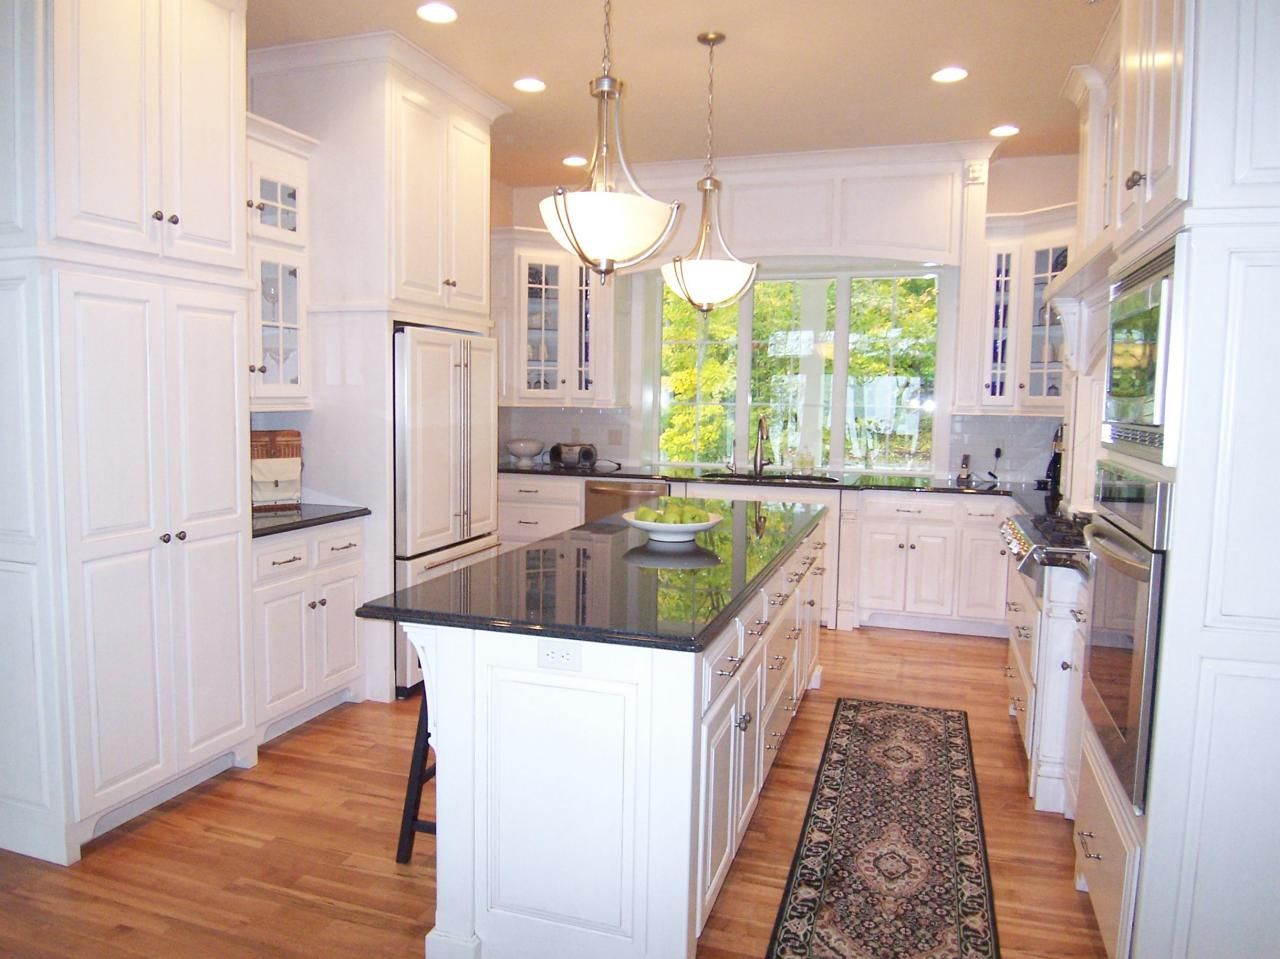 Top 6 Kitchen Layouts  Hgtv Kitchen Design And Kitchens Endearing Kitchen Design With Island Layout Design Ideas